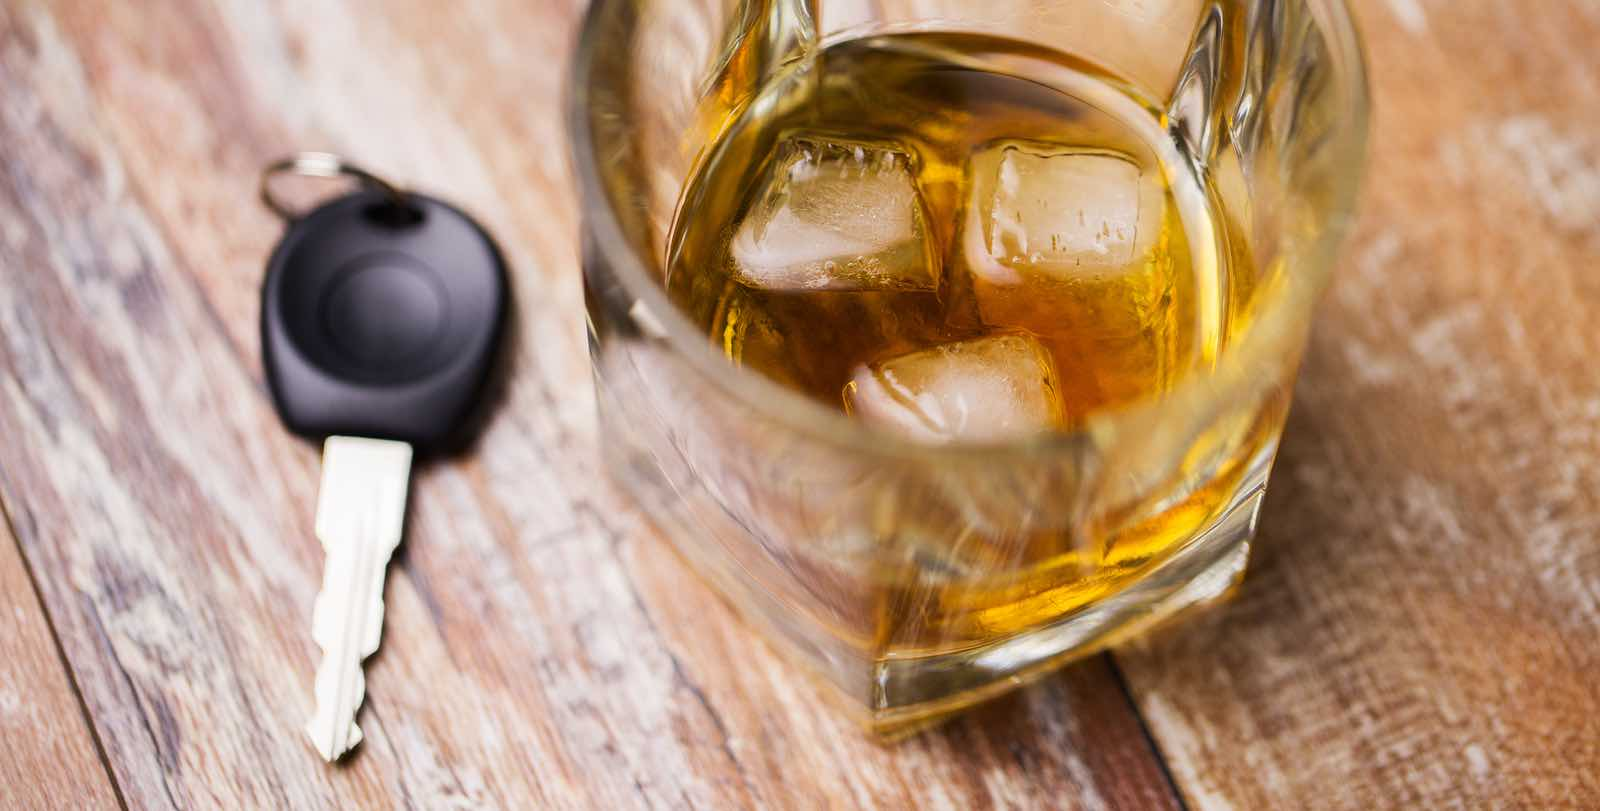 impaired driving charge